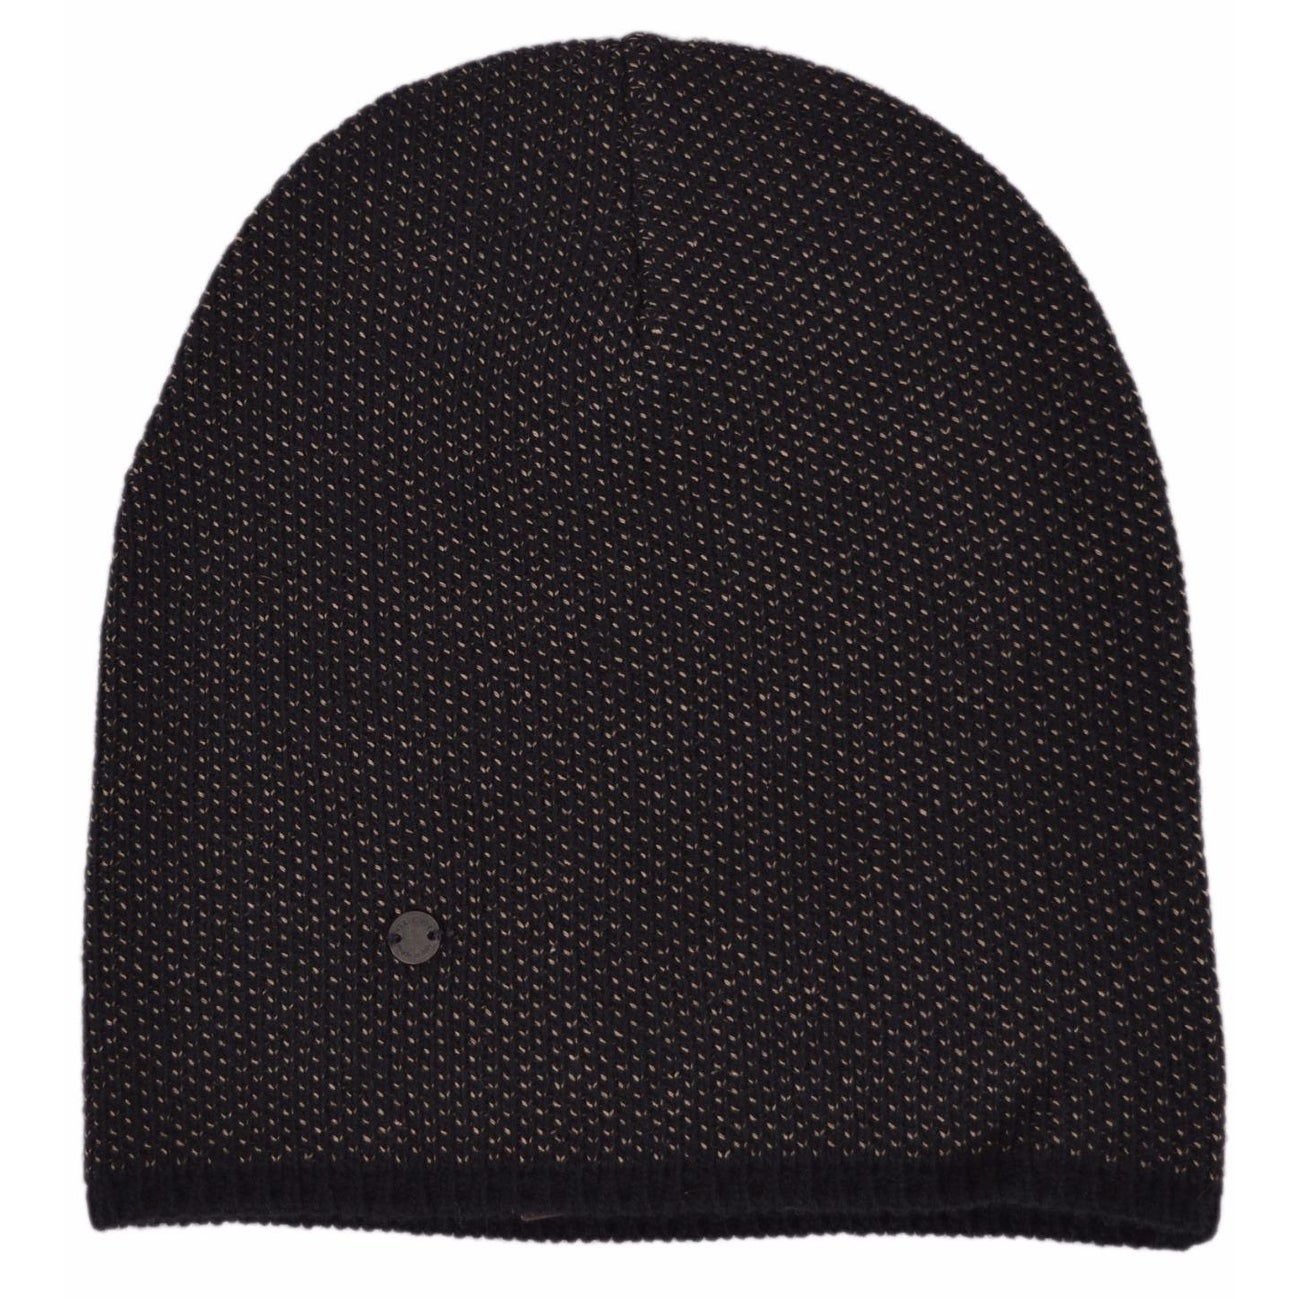 81b61a394682d Shop Gucci 352350 Men s Black Beige Wool Cashmere Beanie Ski Winter Hat XL  - Free Shipping Today - Overstock.com - 13814311